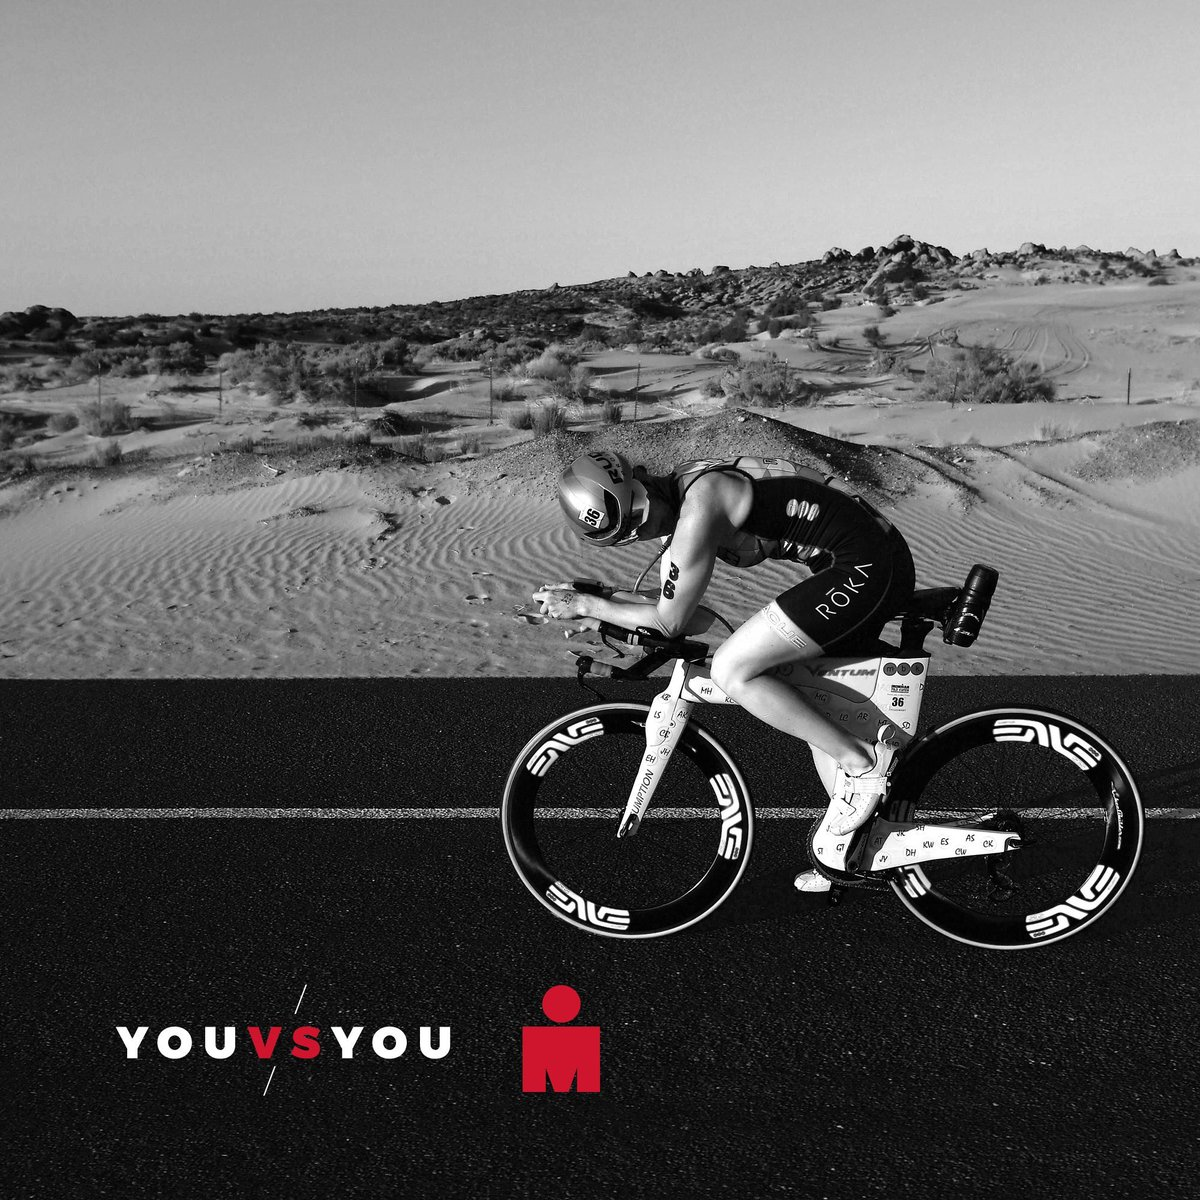 Don't look back. You might be gaining on you. #AnythingisPossible #YouvsYou